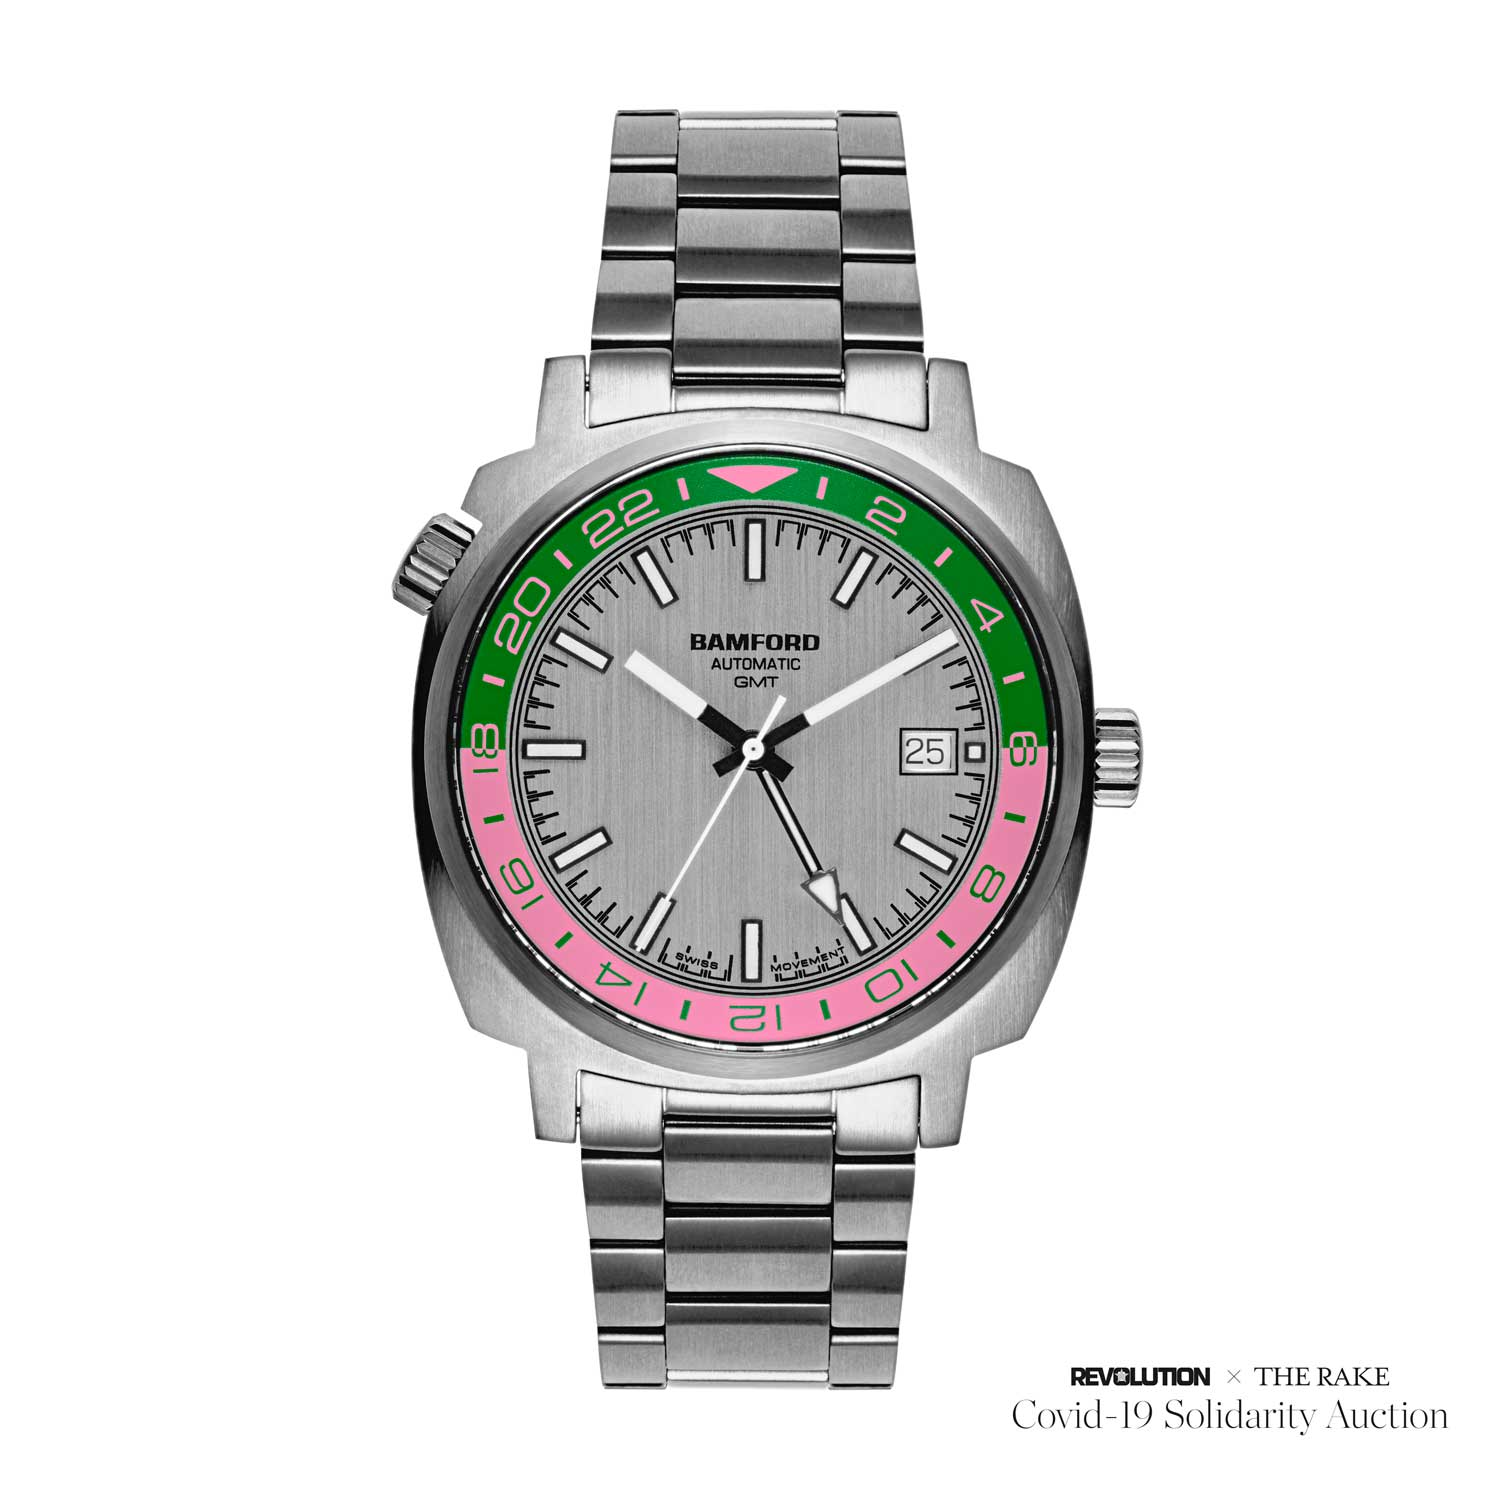 Unique Pink and Green Bamford GMT for Revolution x The Rake Covid-19 Solidarity Auction